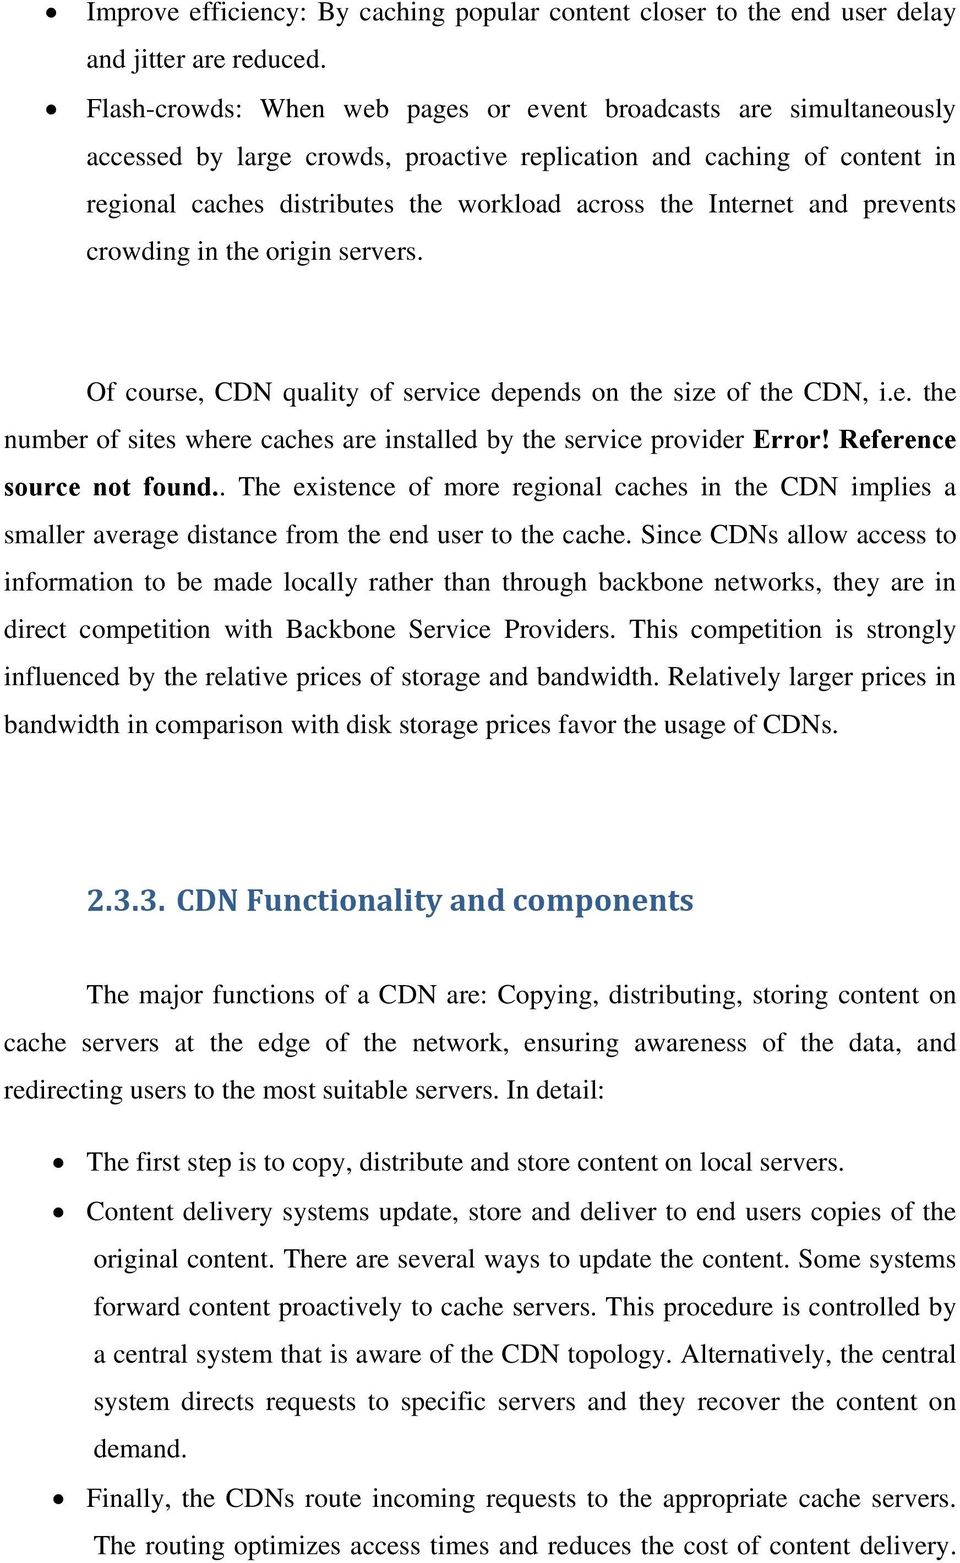 Internet and prevents crowding in the origin servers. Of course, CDN quality of service depends on the size of the CDN, i.e. the number of sites where caches are installed by the service provider Error!